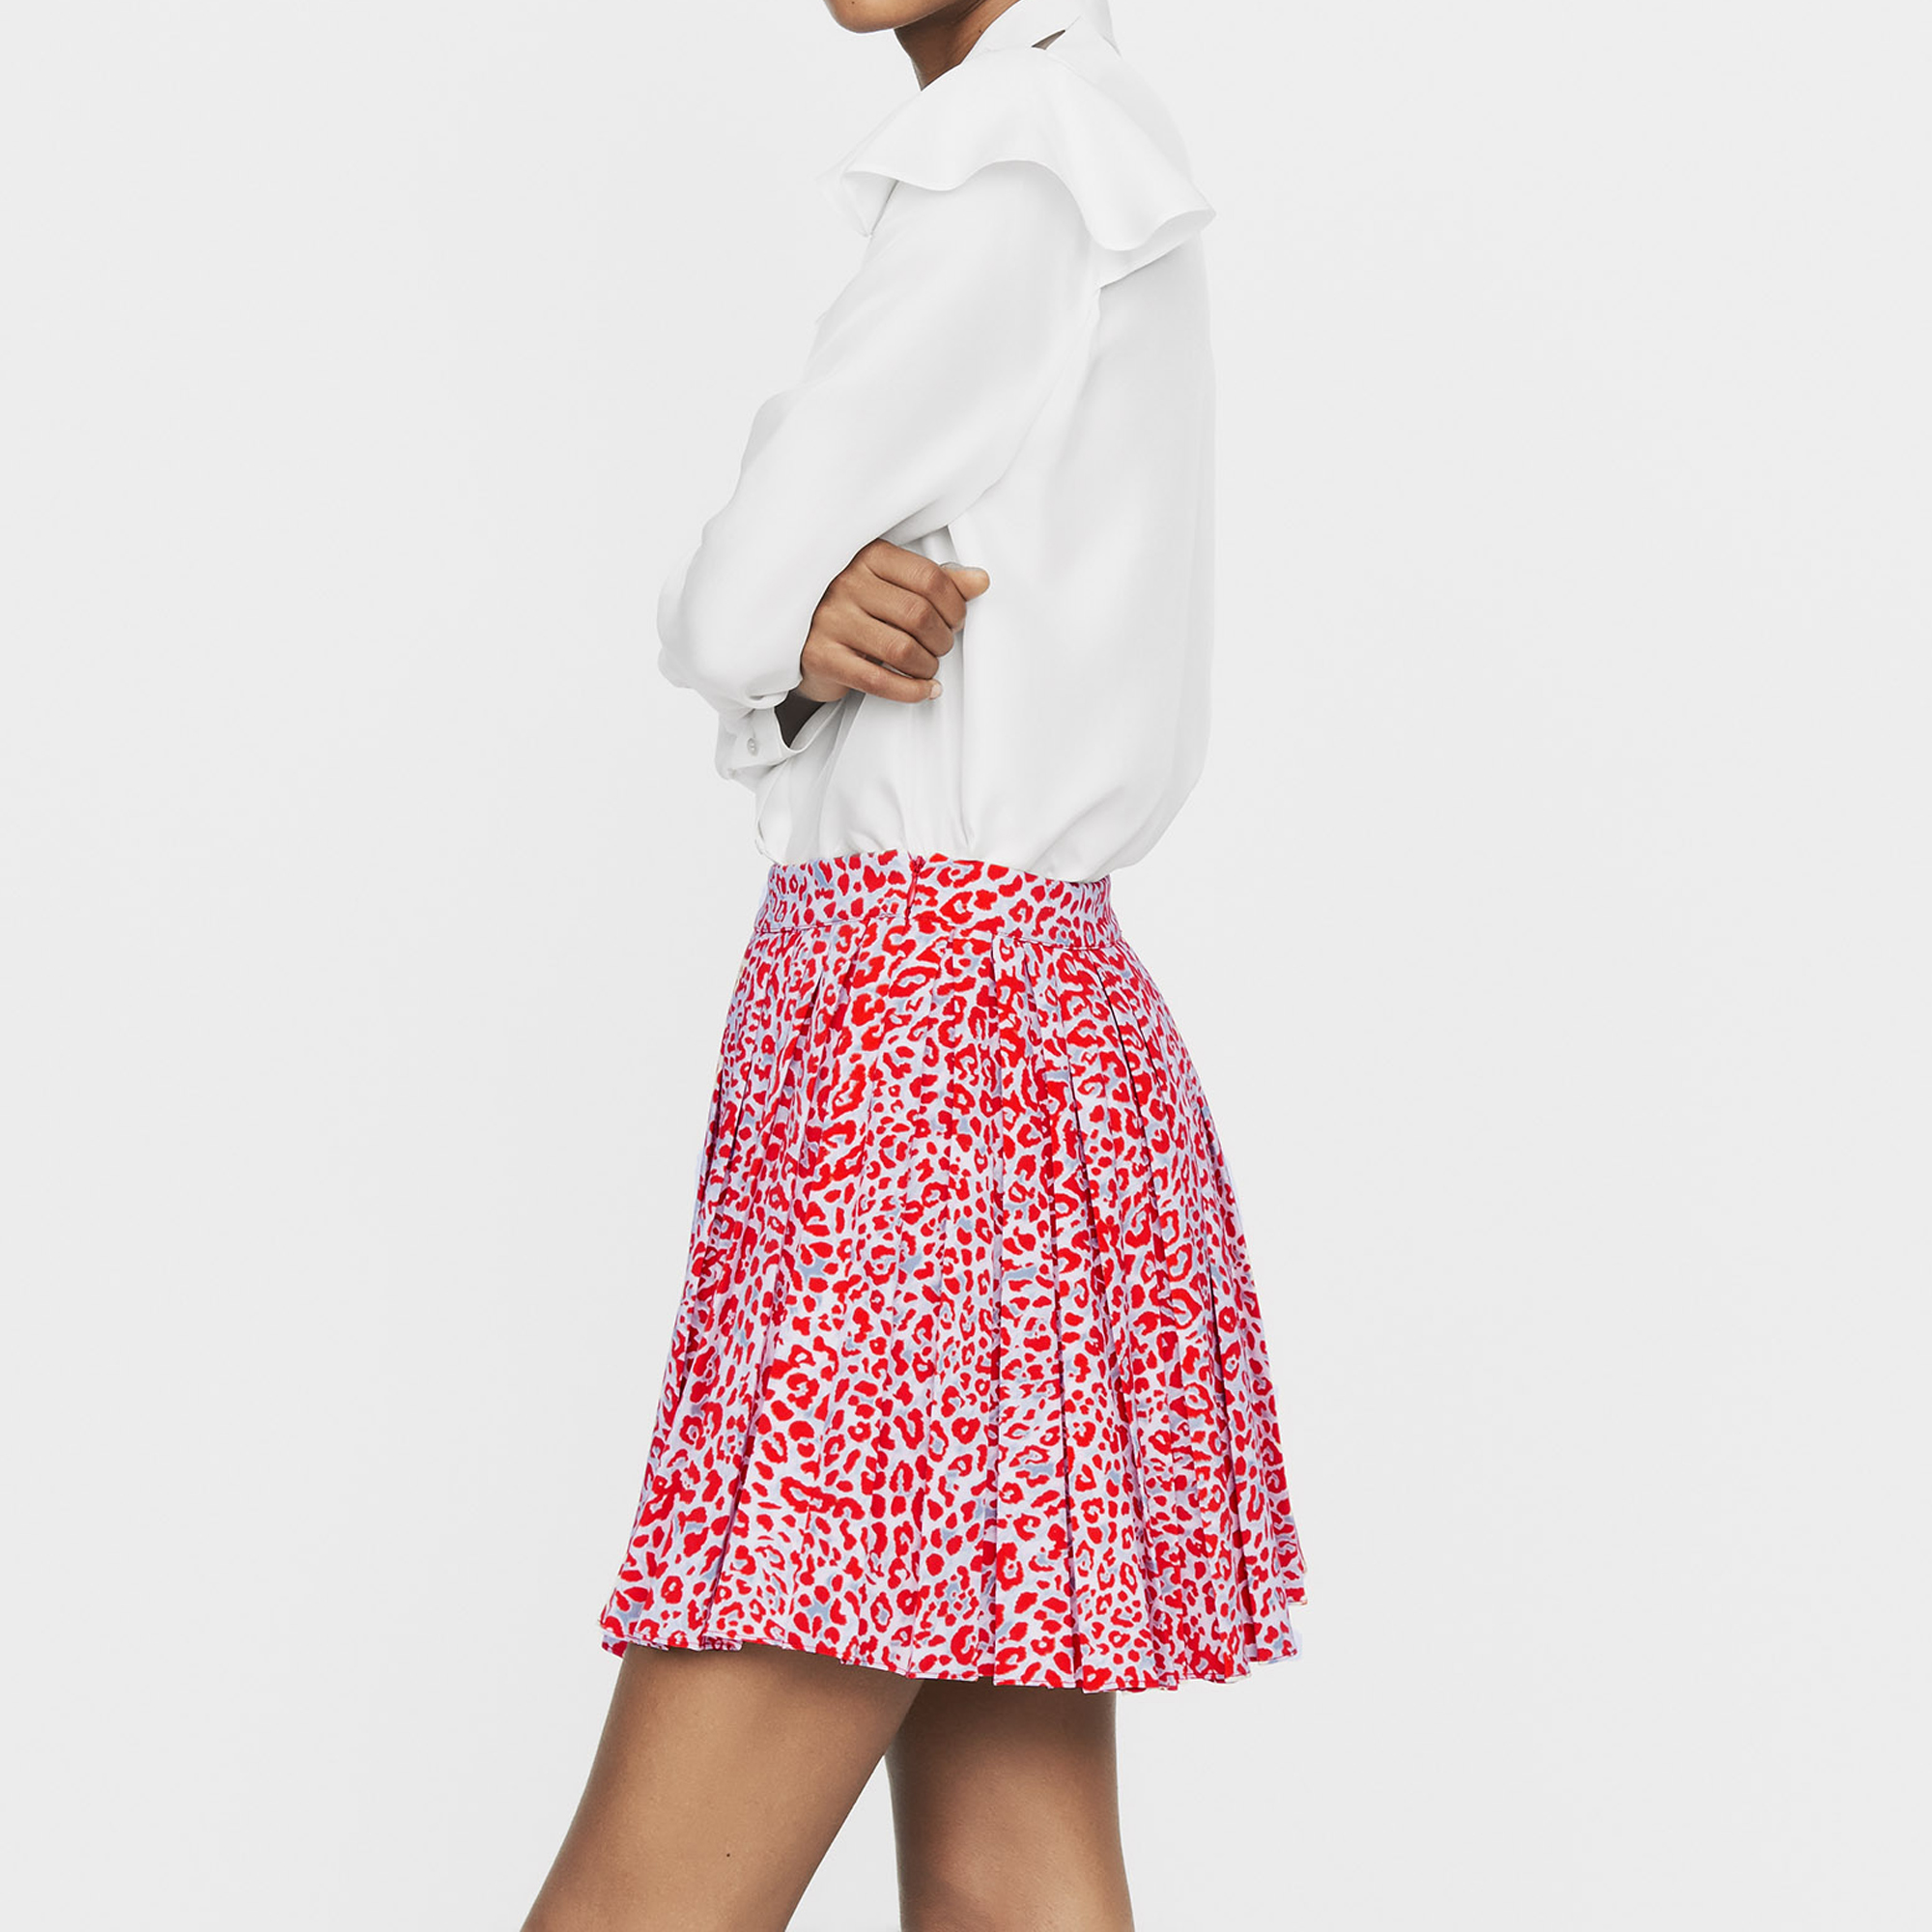 Pleated skirt with leopard print - Print